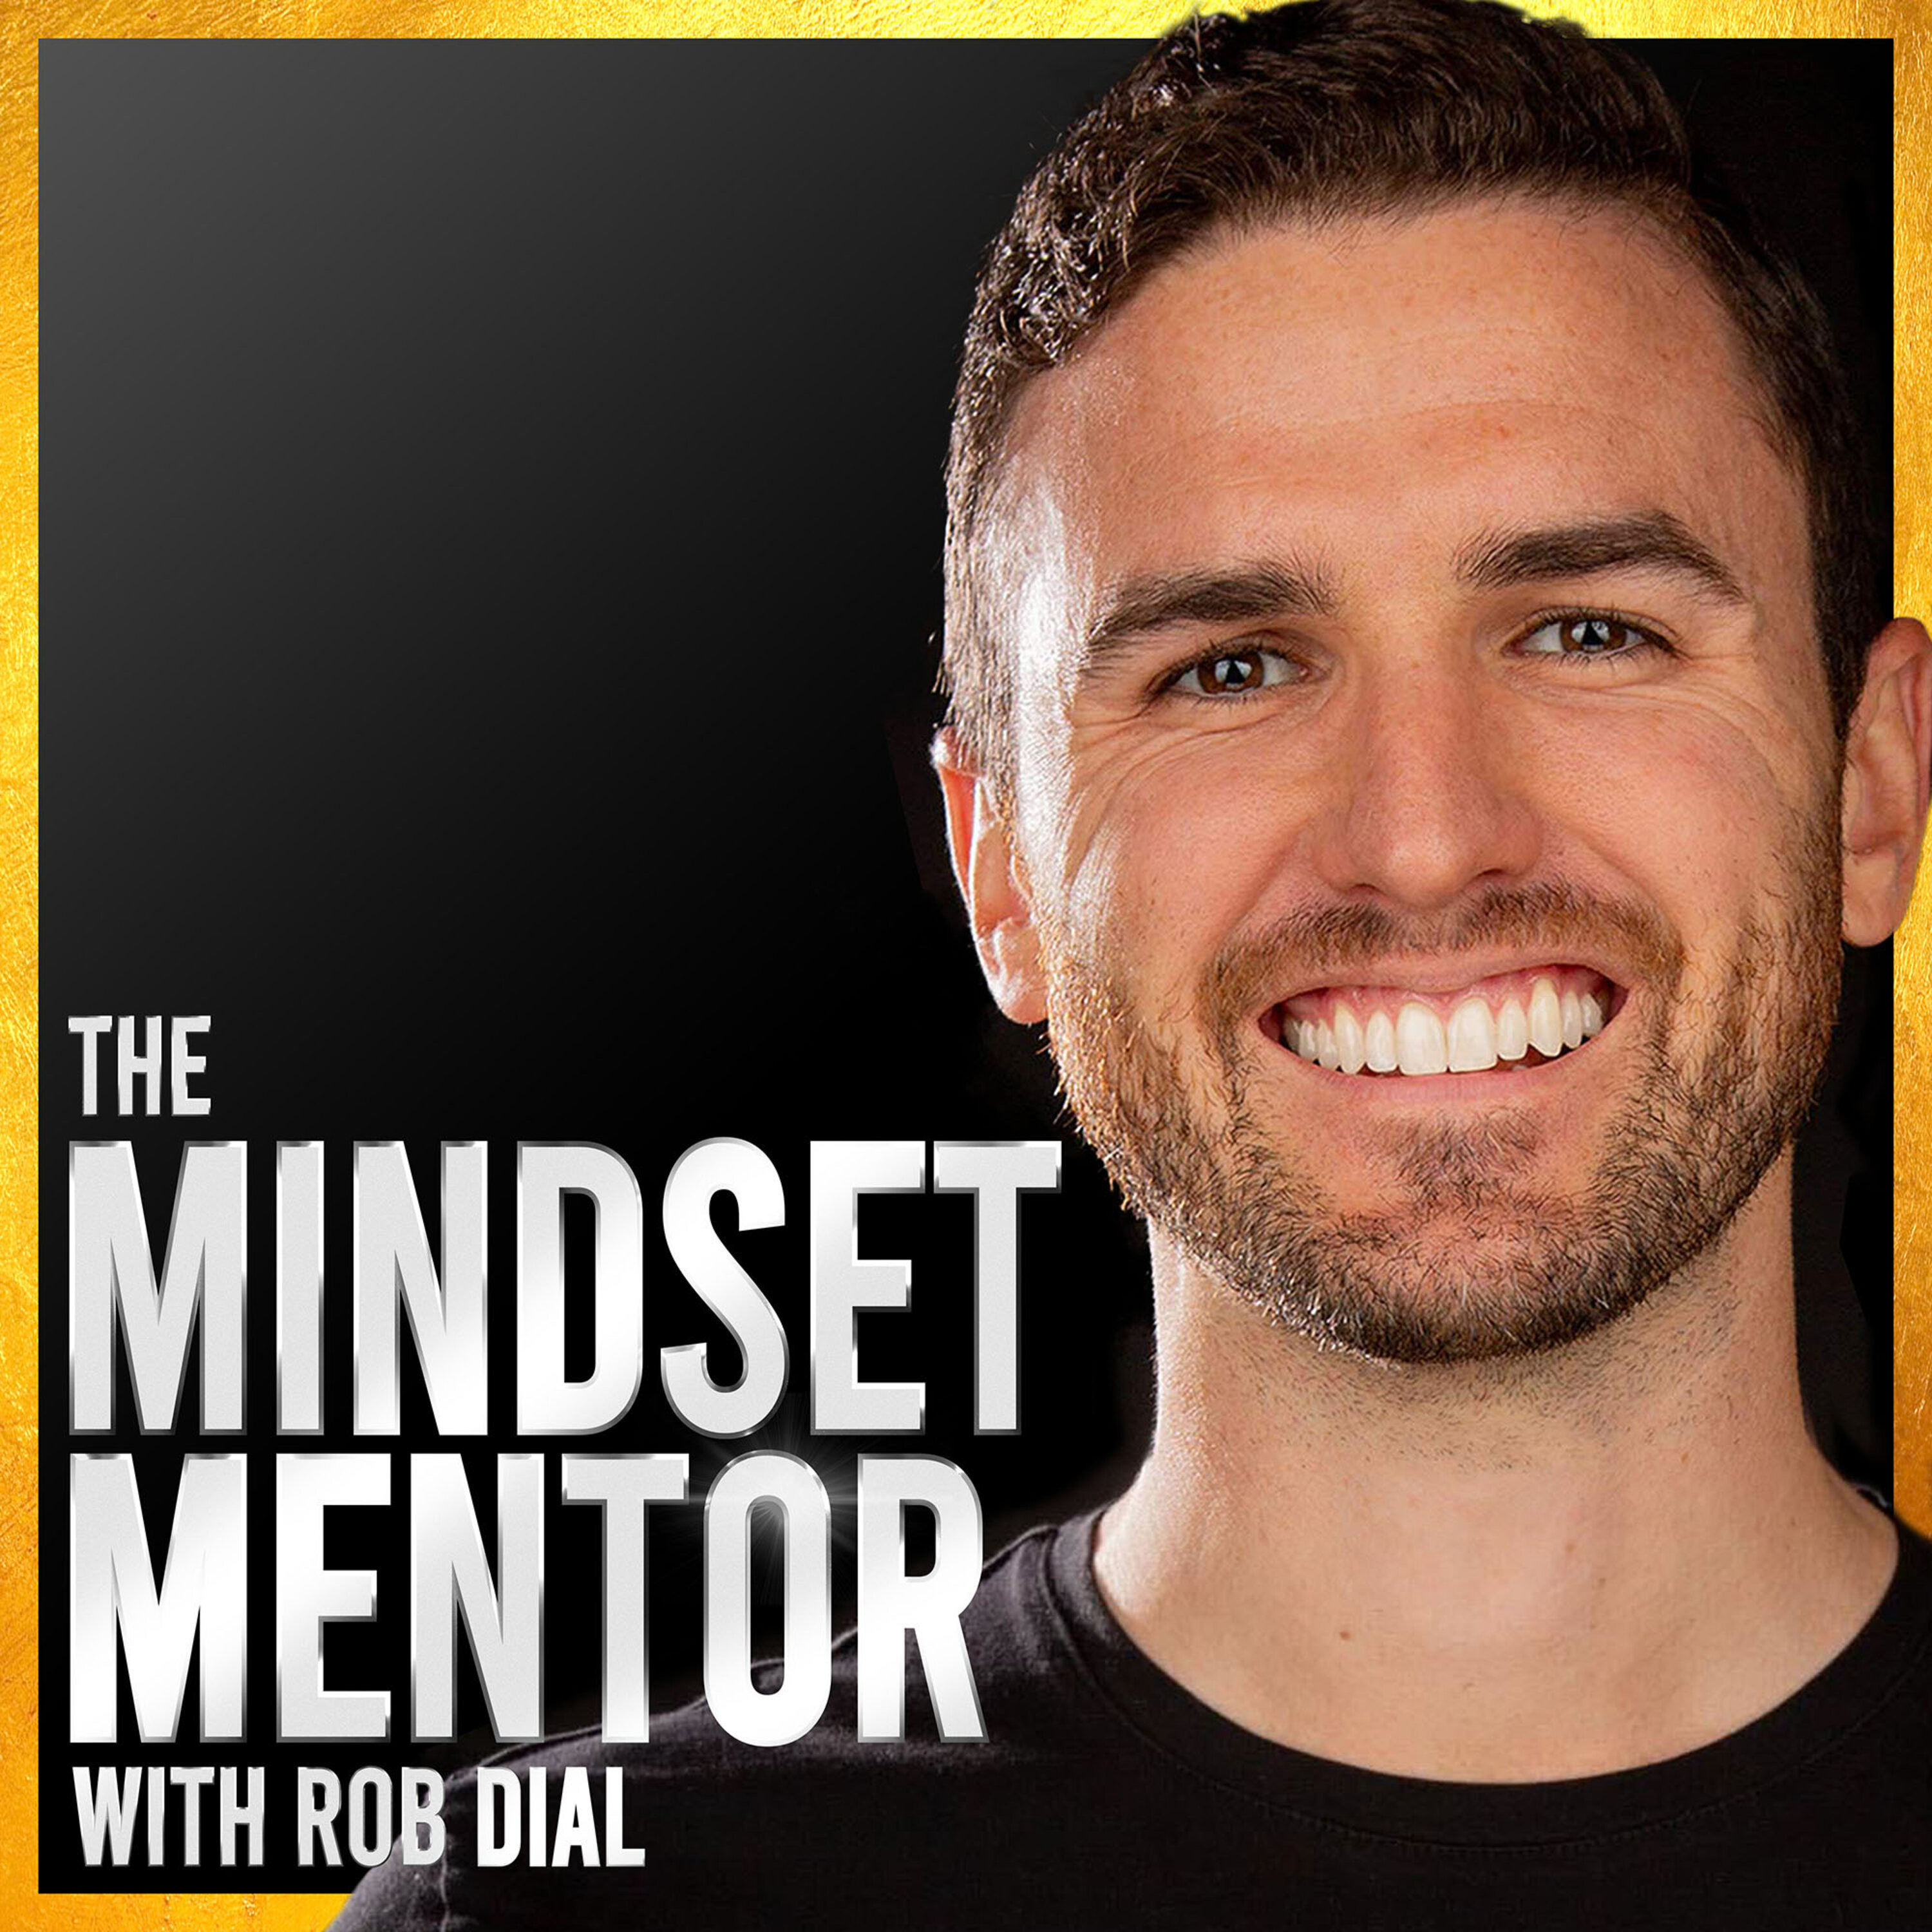 The Mindset Mentor